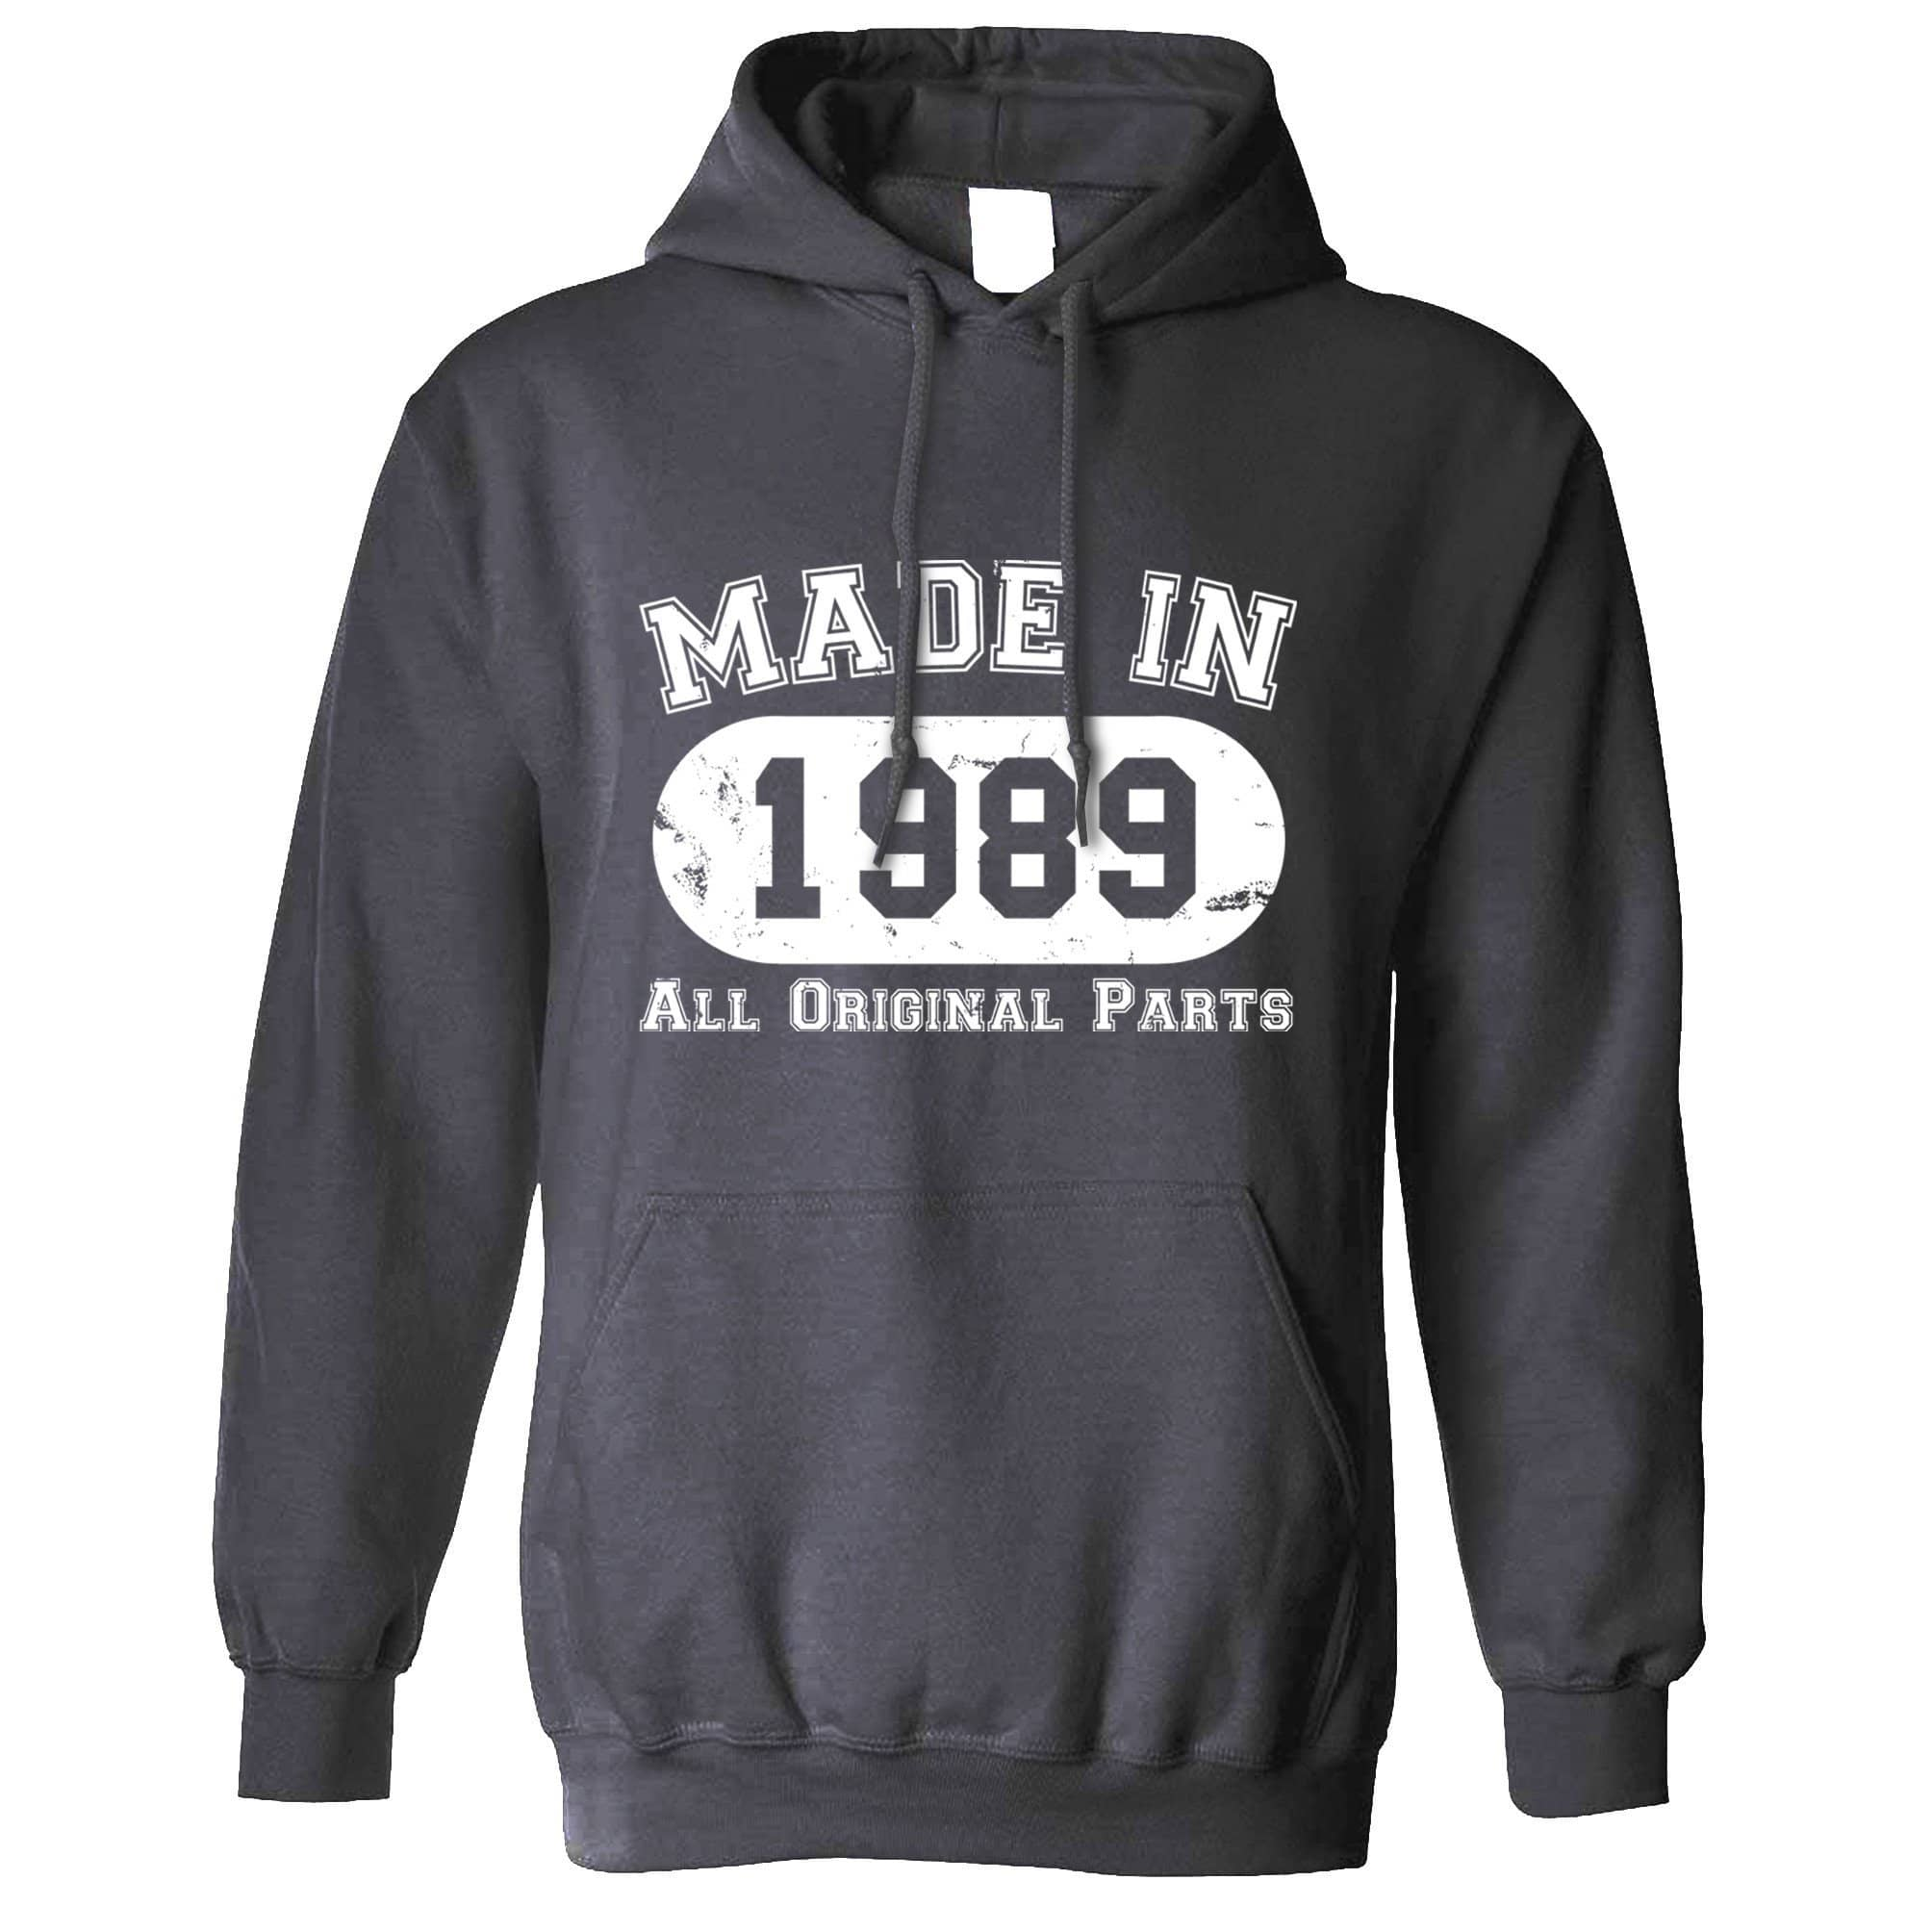 Made in 1989 All Original Parts Hoodie [Distressed]